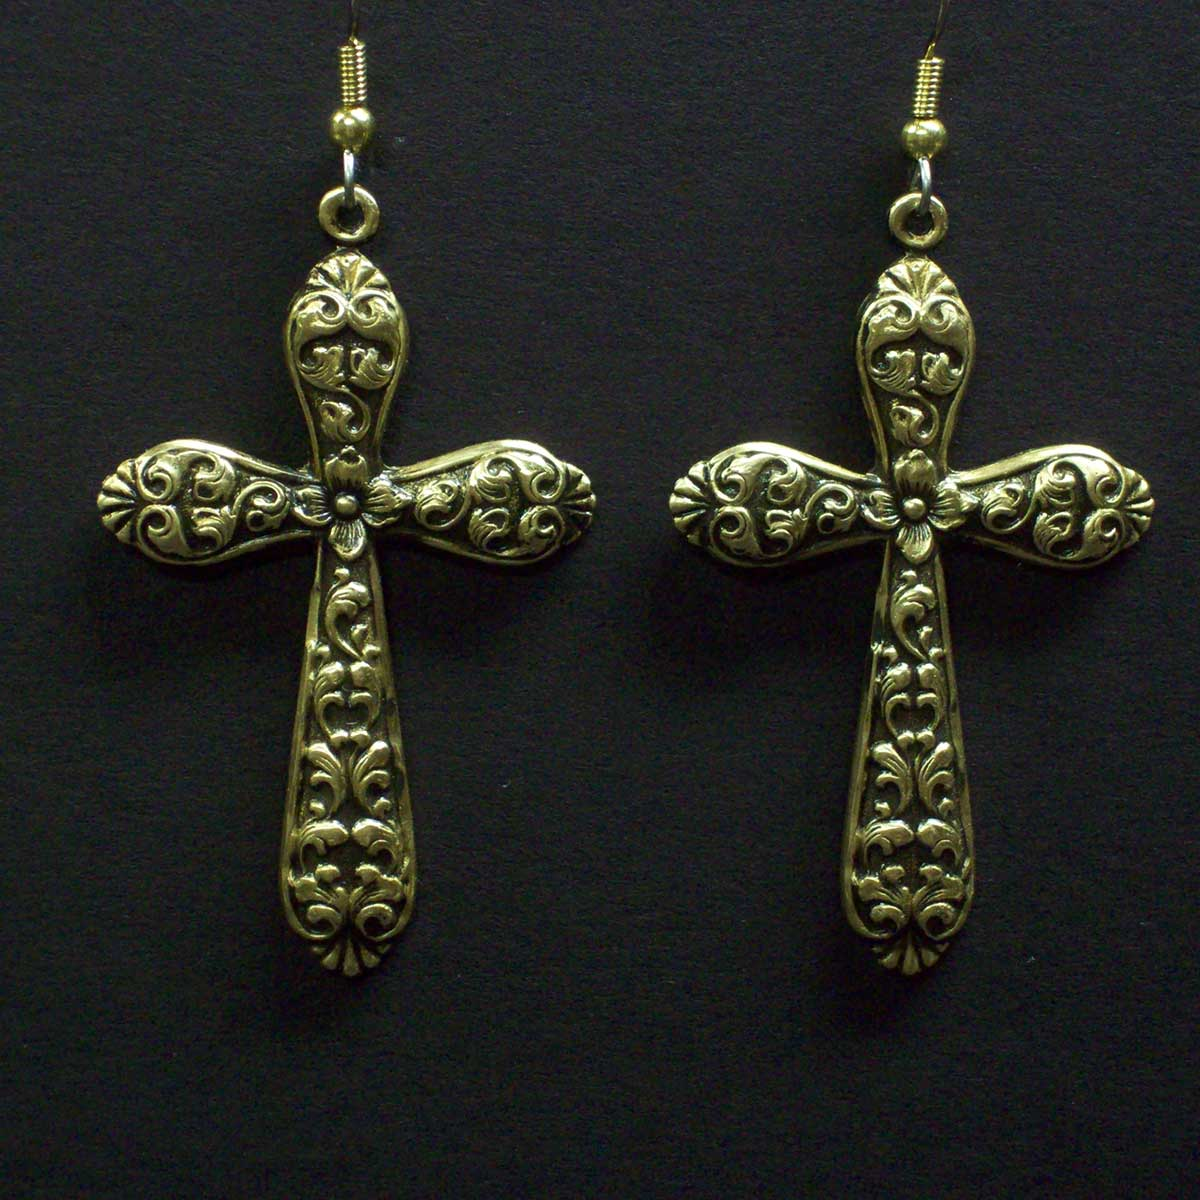 Large Rounded Floral Cross Earrings